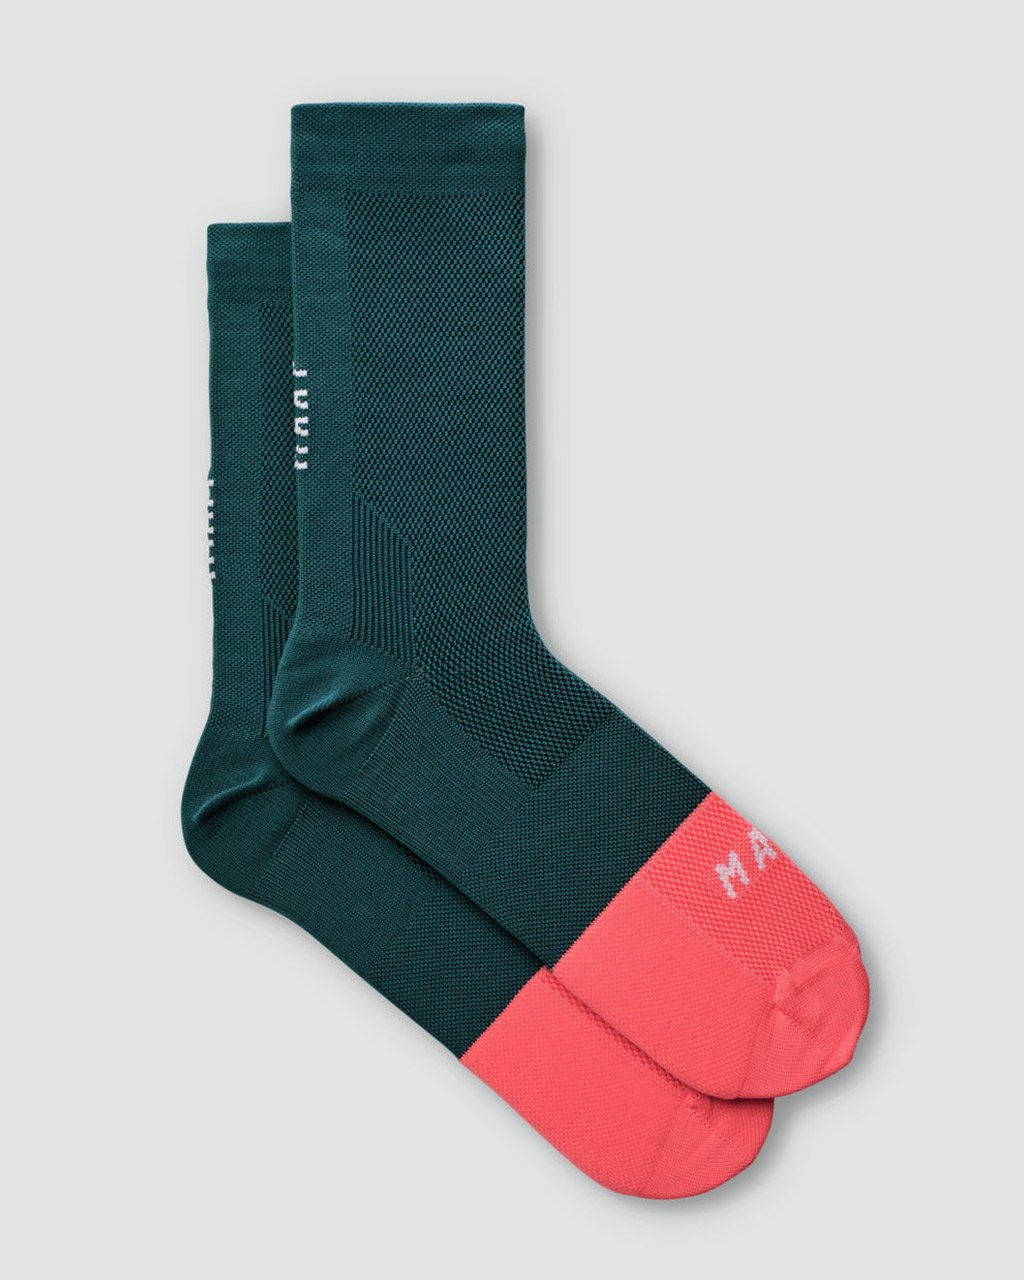 Division Sock - Dark Teal